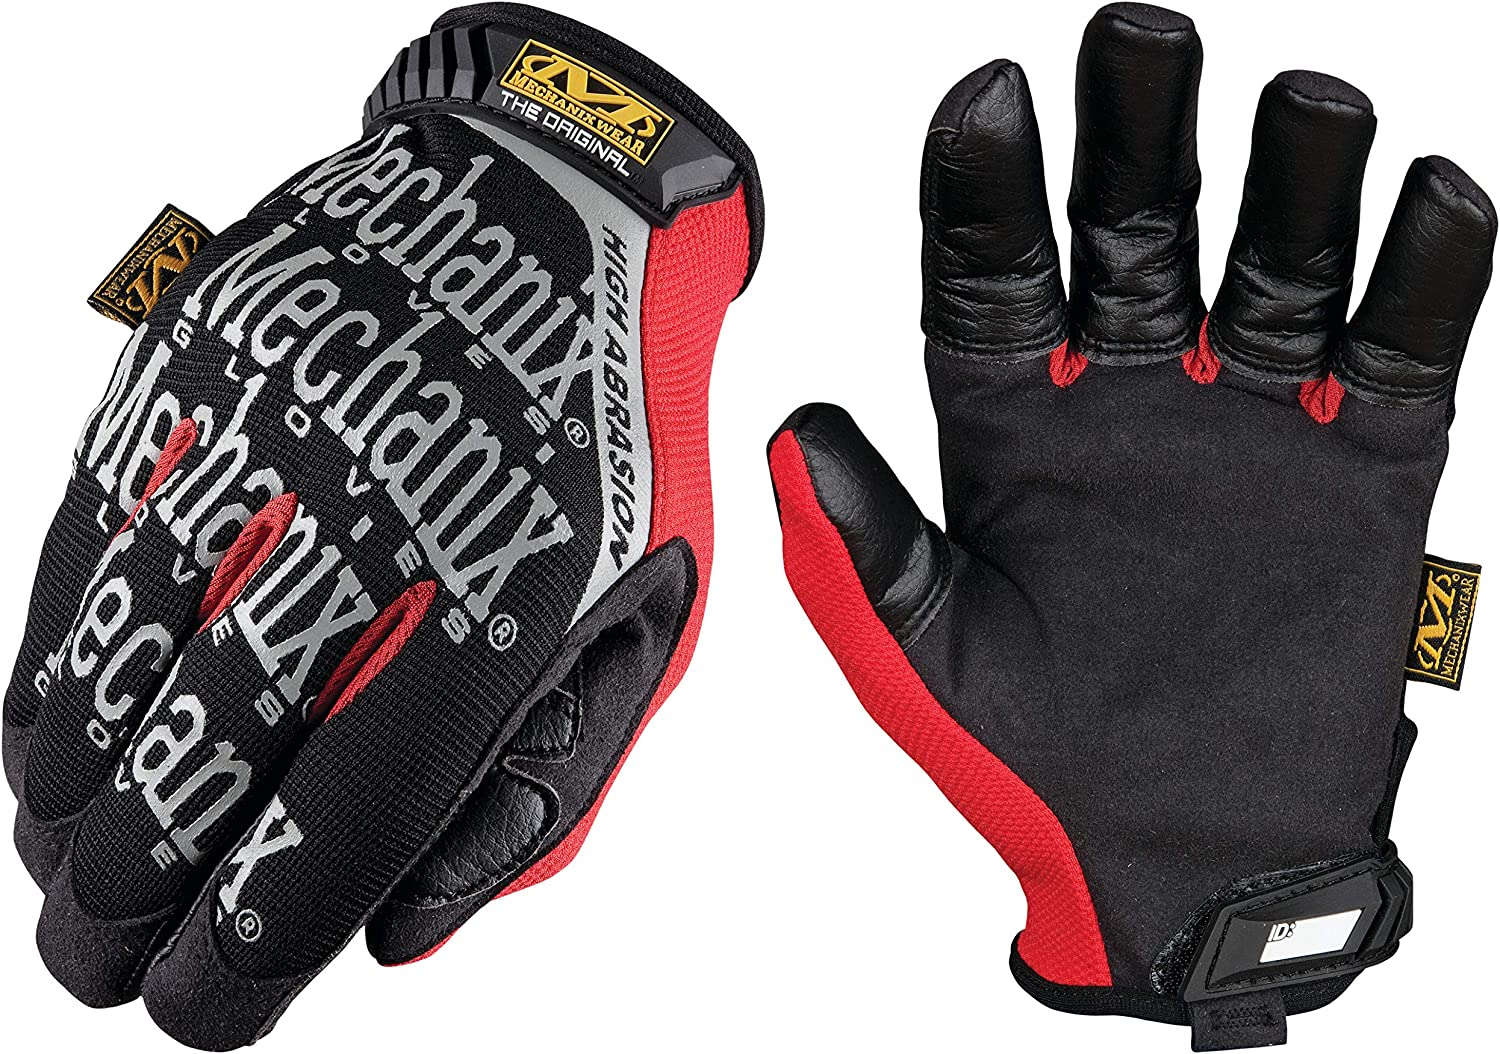 Our shop OFFers the best service Mechanix Wear MGP-08-009 - New product type Original Medium High Abrasion Gloves